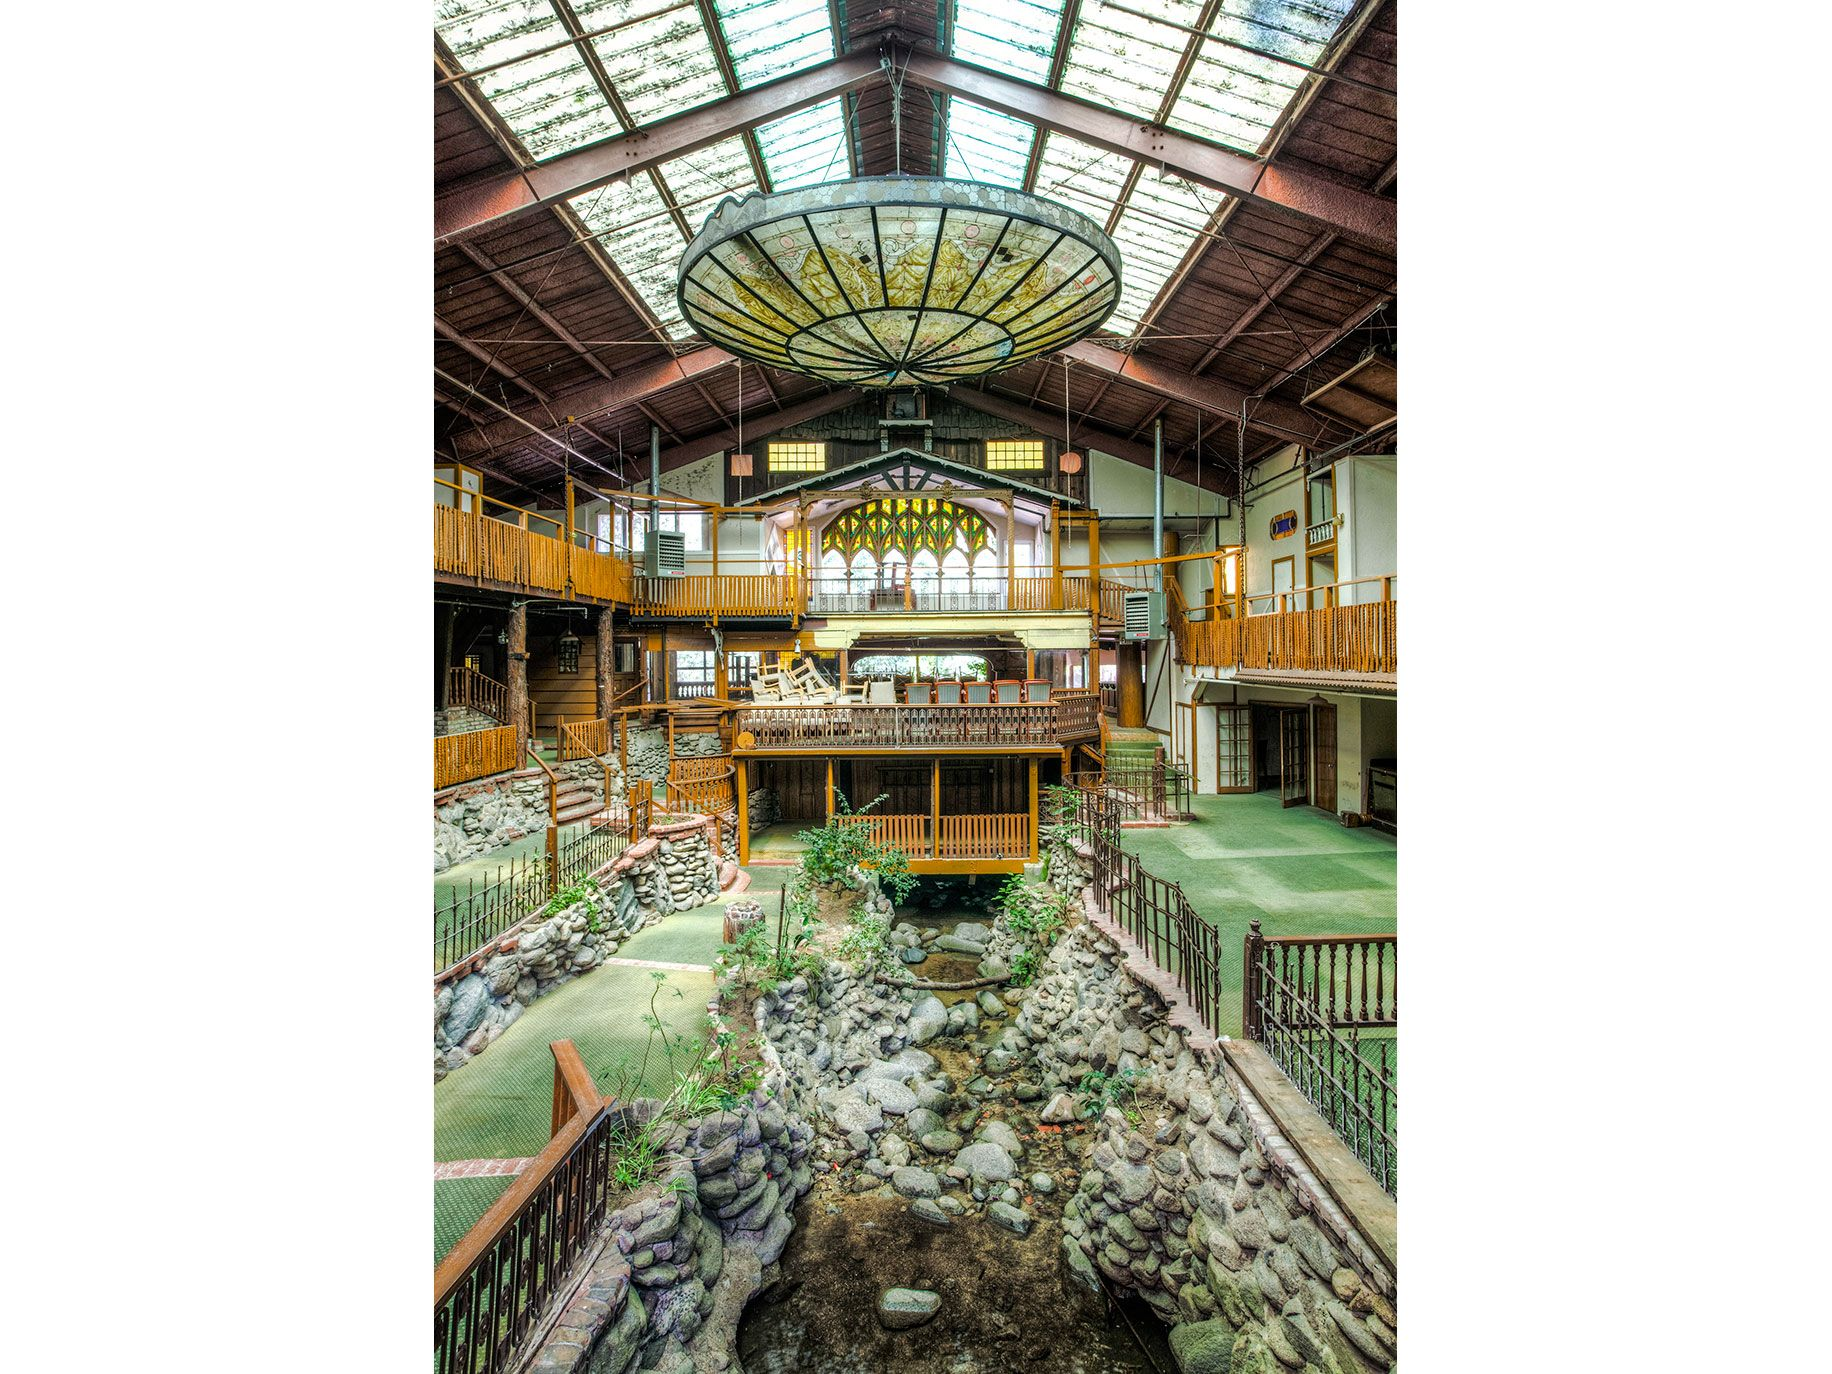 Brookdale Lodge in Santa Cruz County, was a favorite resort for Hollywood stars like Mae West, Marilyn Monroe and Rita Hayworth. Abandoned after a fire in 2009, it became a popular spot for urban explorers before being renovated and reopening last year.